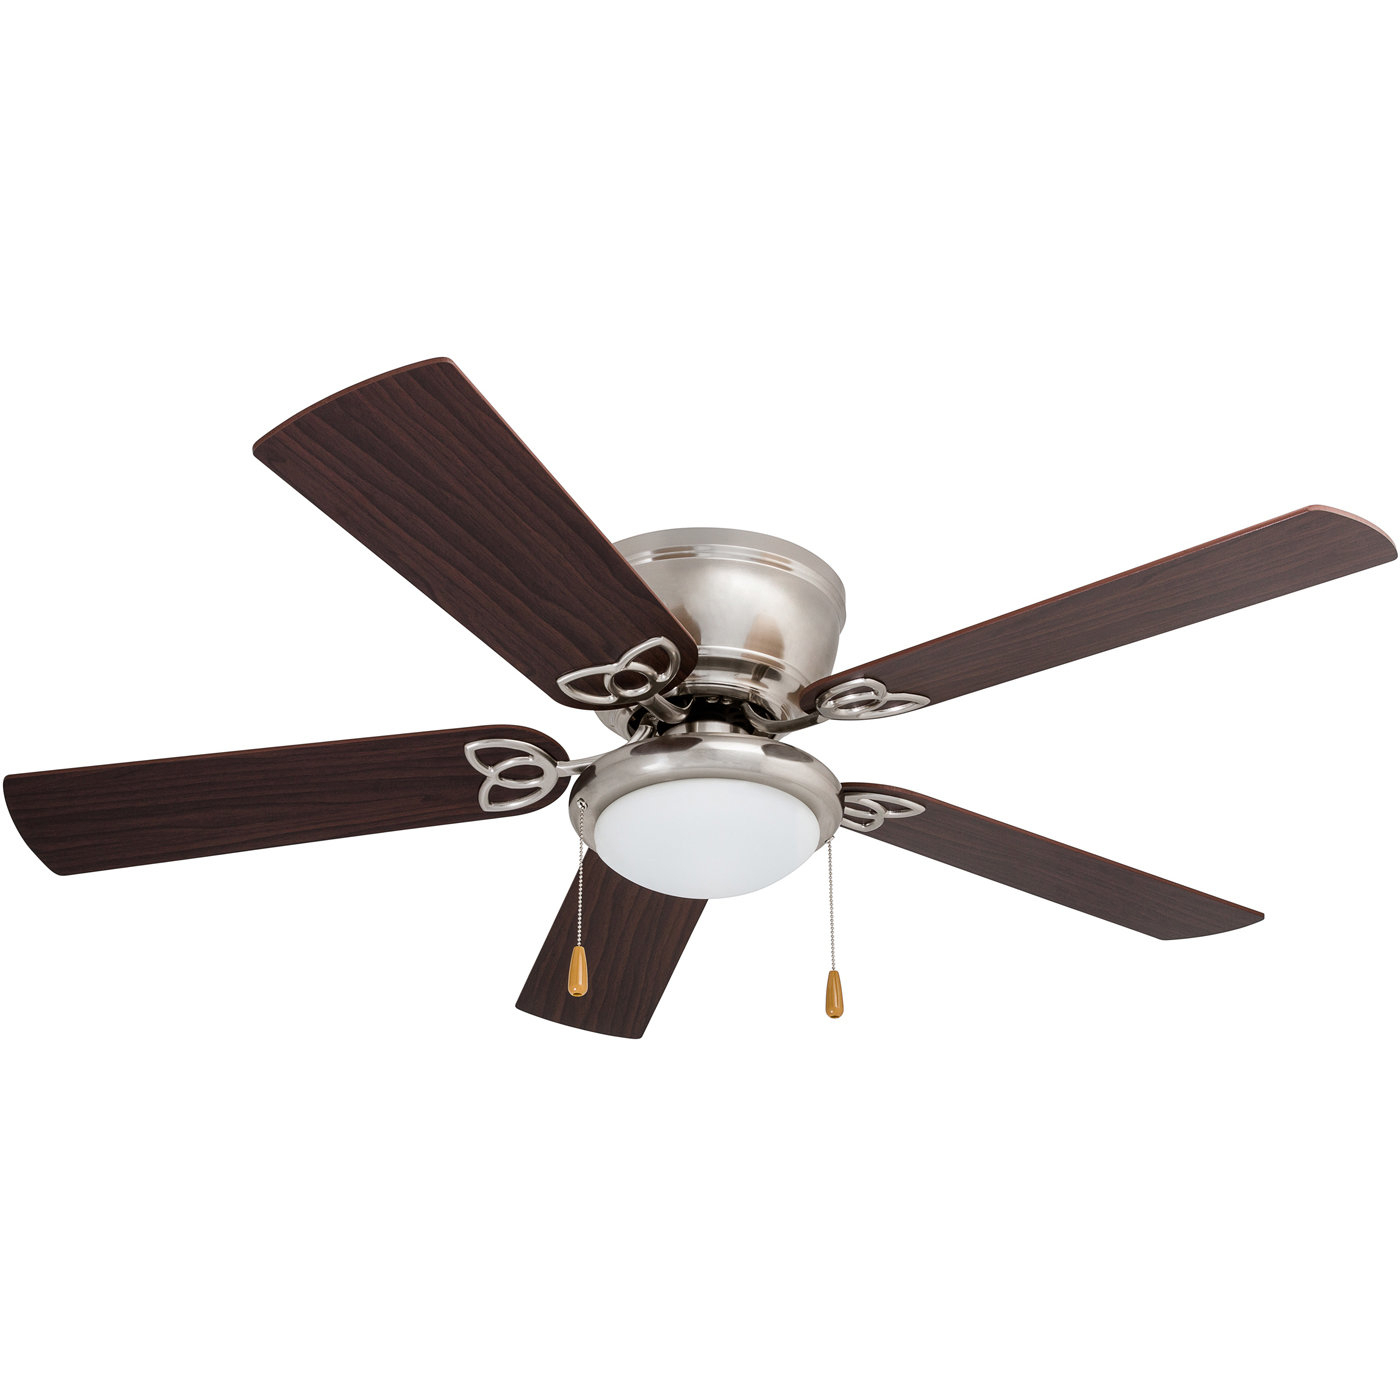 "52"" Mattias 5 Blade Ceiling Fan, Light Kit Included Within Current The Kensington 5 Blade Ceiling Fans (Gallery 11 of 20)"